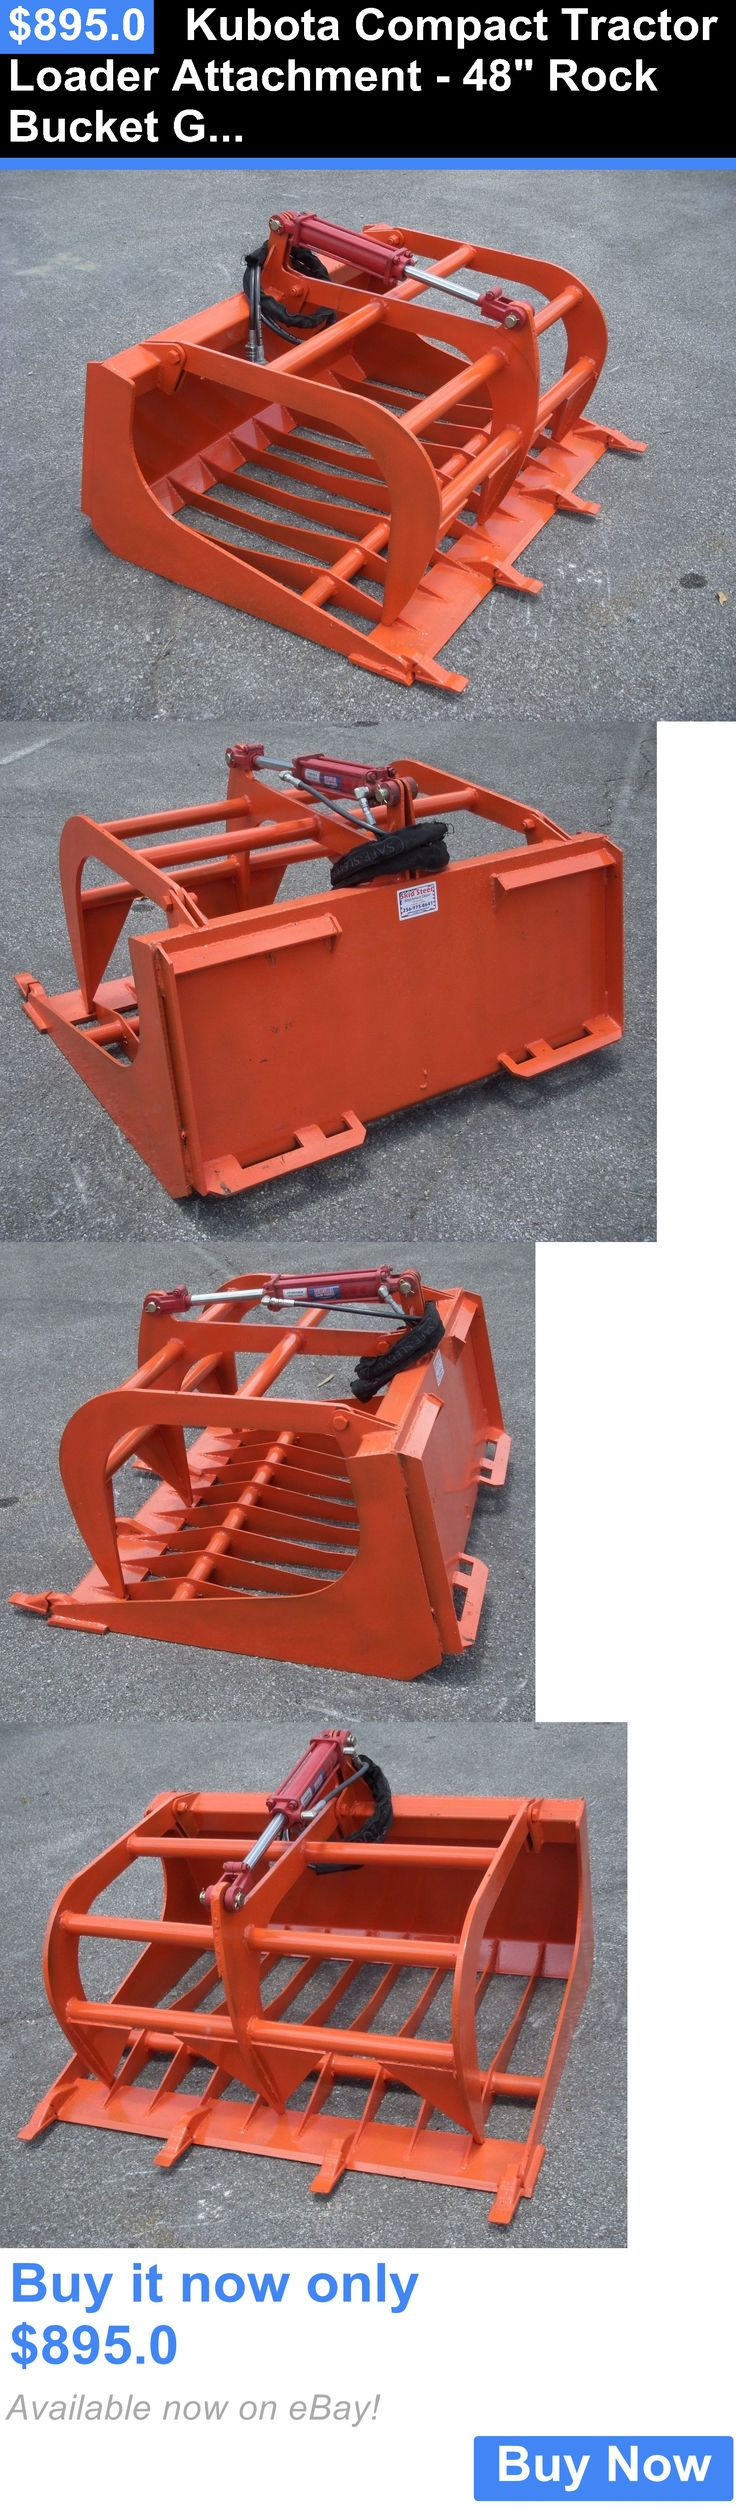 heavy equipment: Kubota Compact Tractor Loader Attachment - 48 Rock Bucket Grapple - Free Ship!! BUY IT NOW ONLY: $895.0